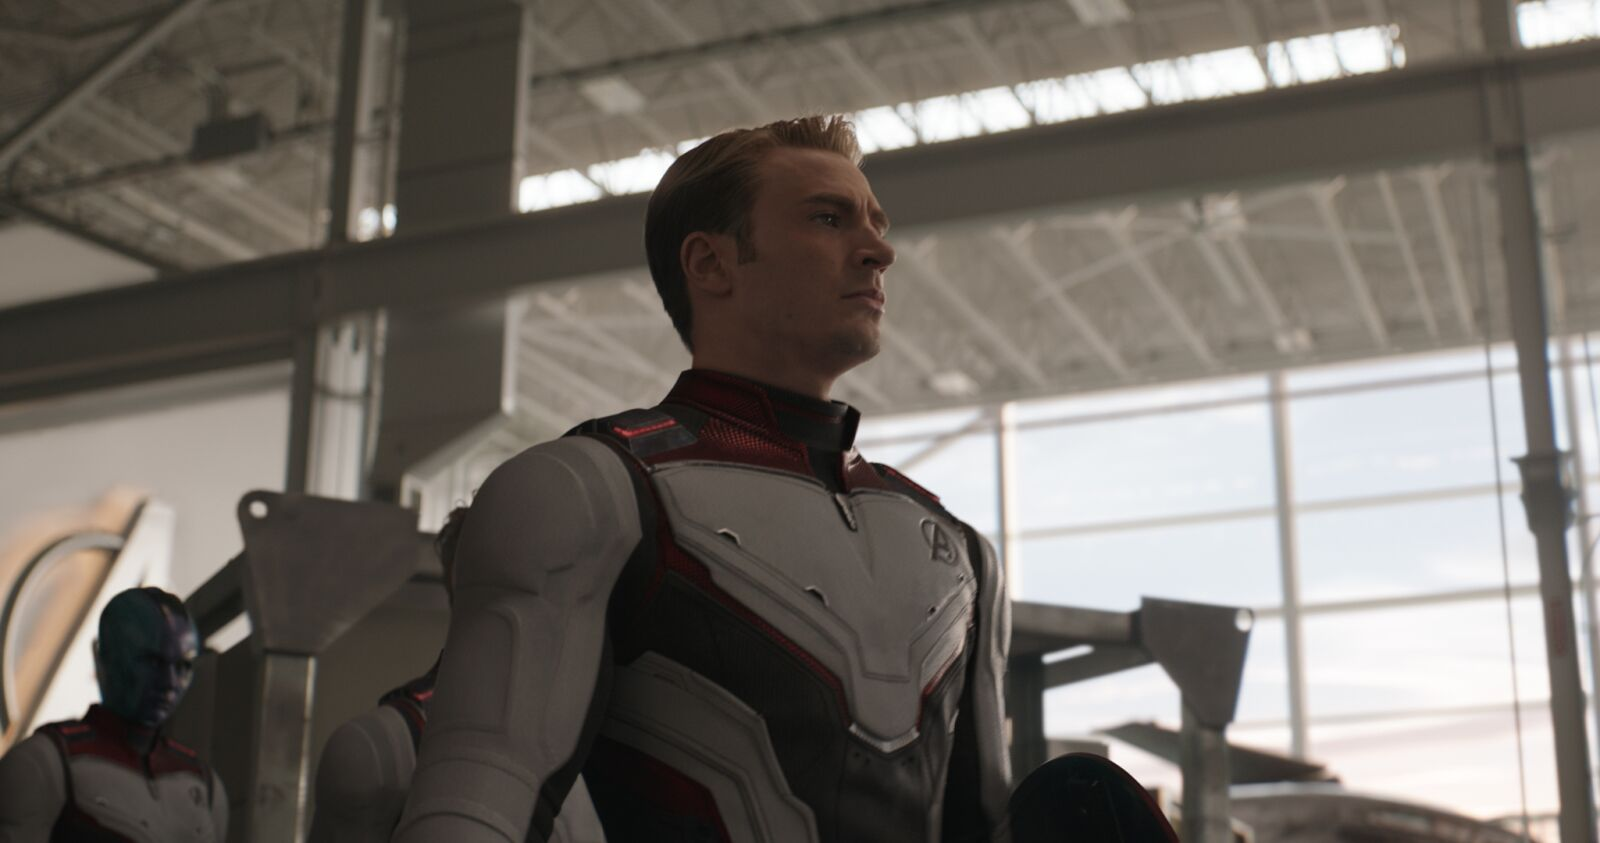 Avengers: Endgame hoping new footage will bring fans back to break Avatar's record